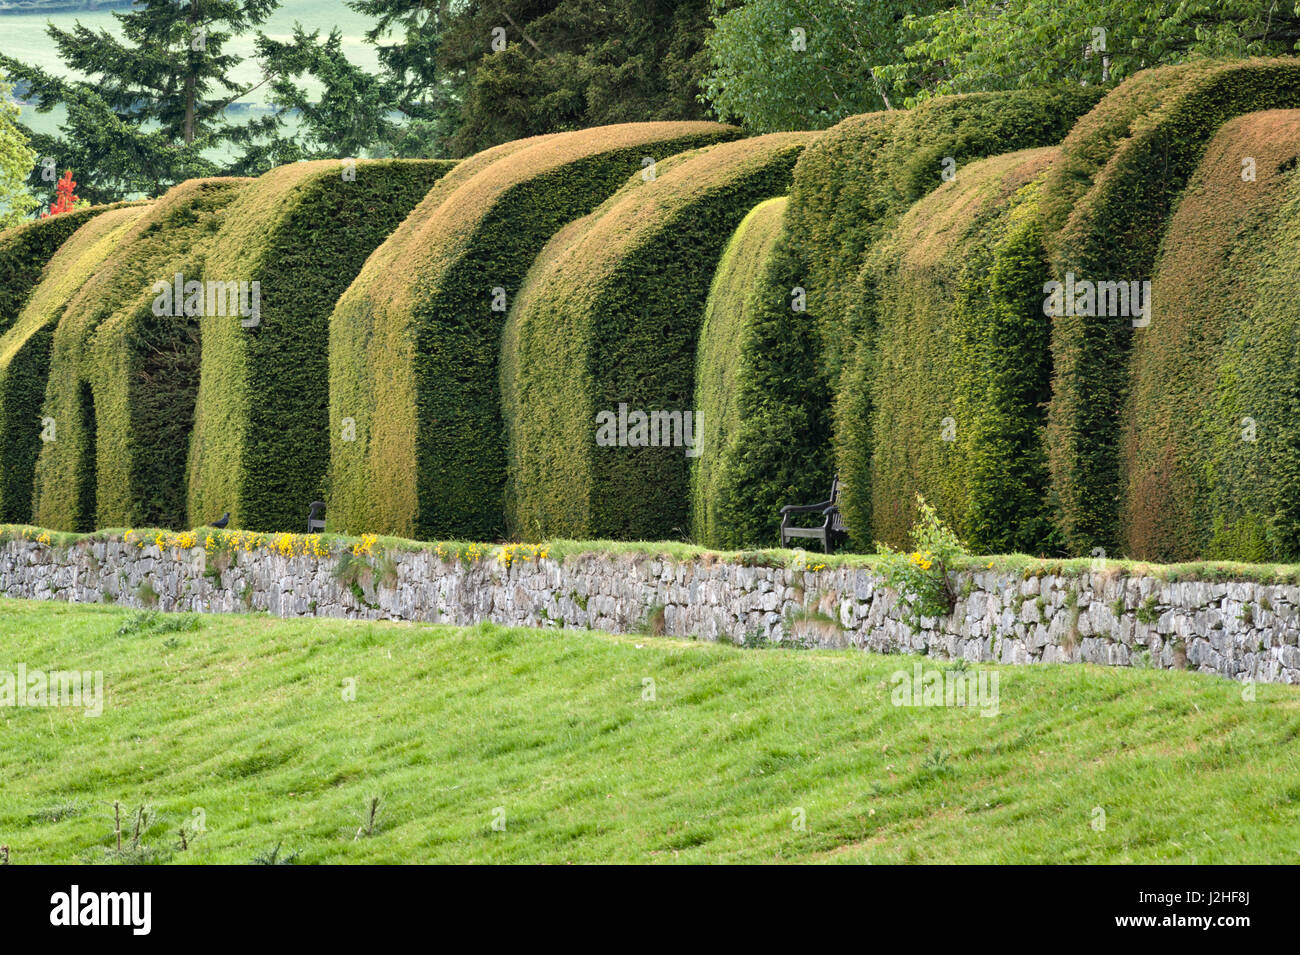 Chirk Castle gardens, Wrexham, Wales, UK. The yew hedges were planted by William Emes from 1761 - Stock Image